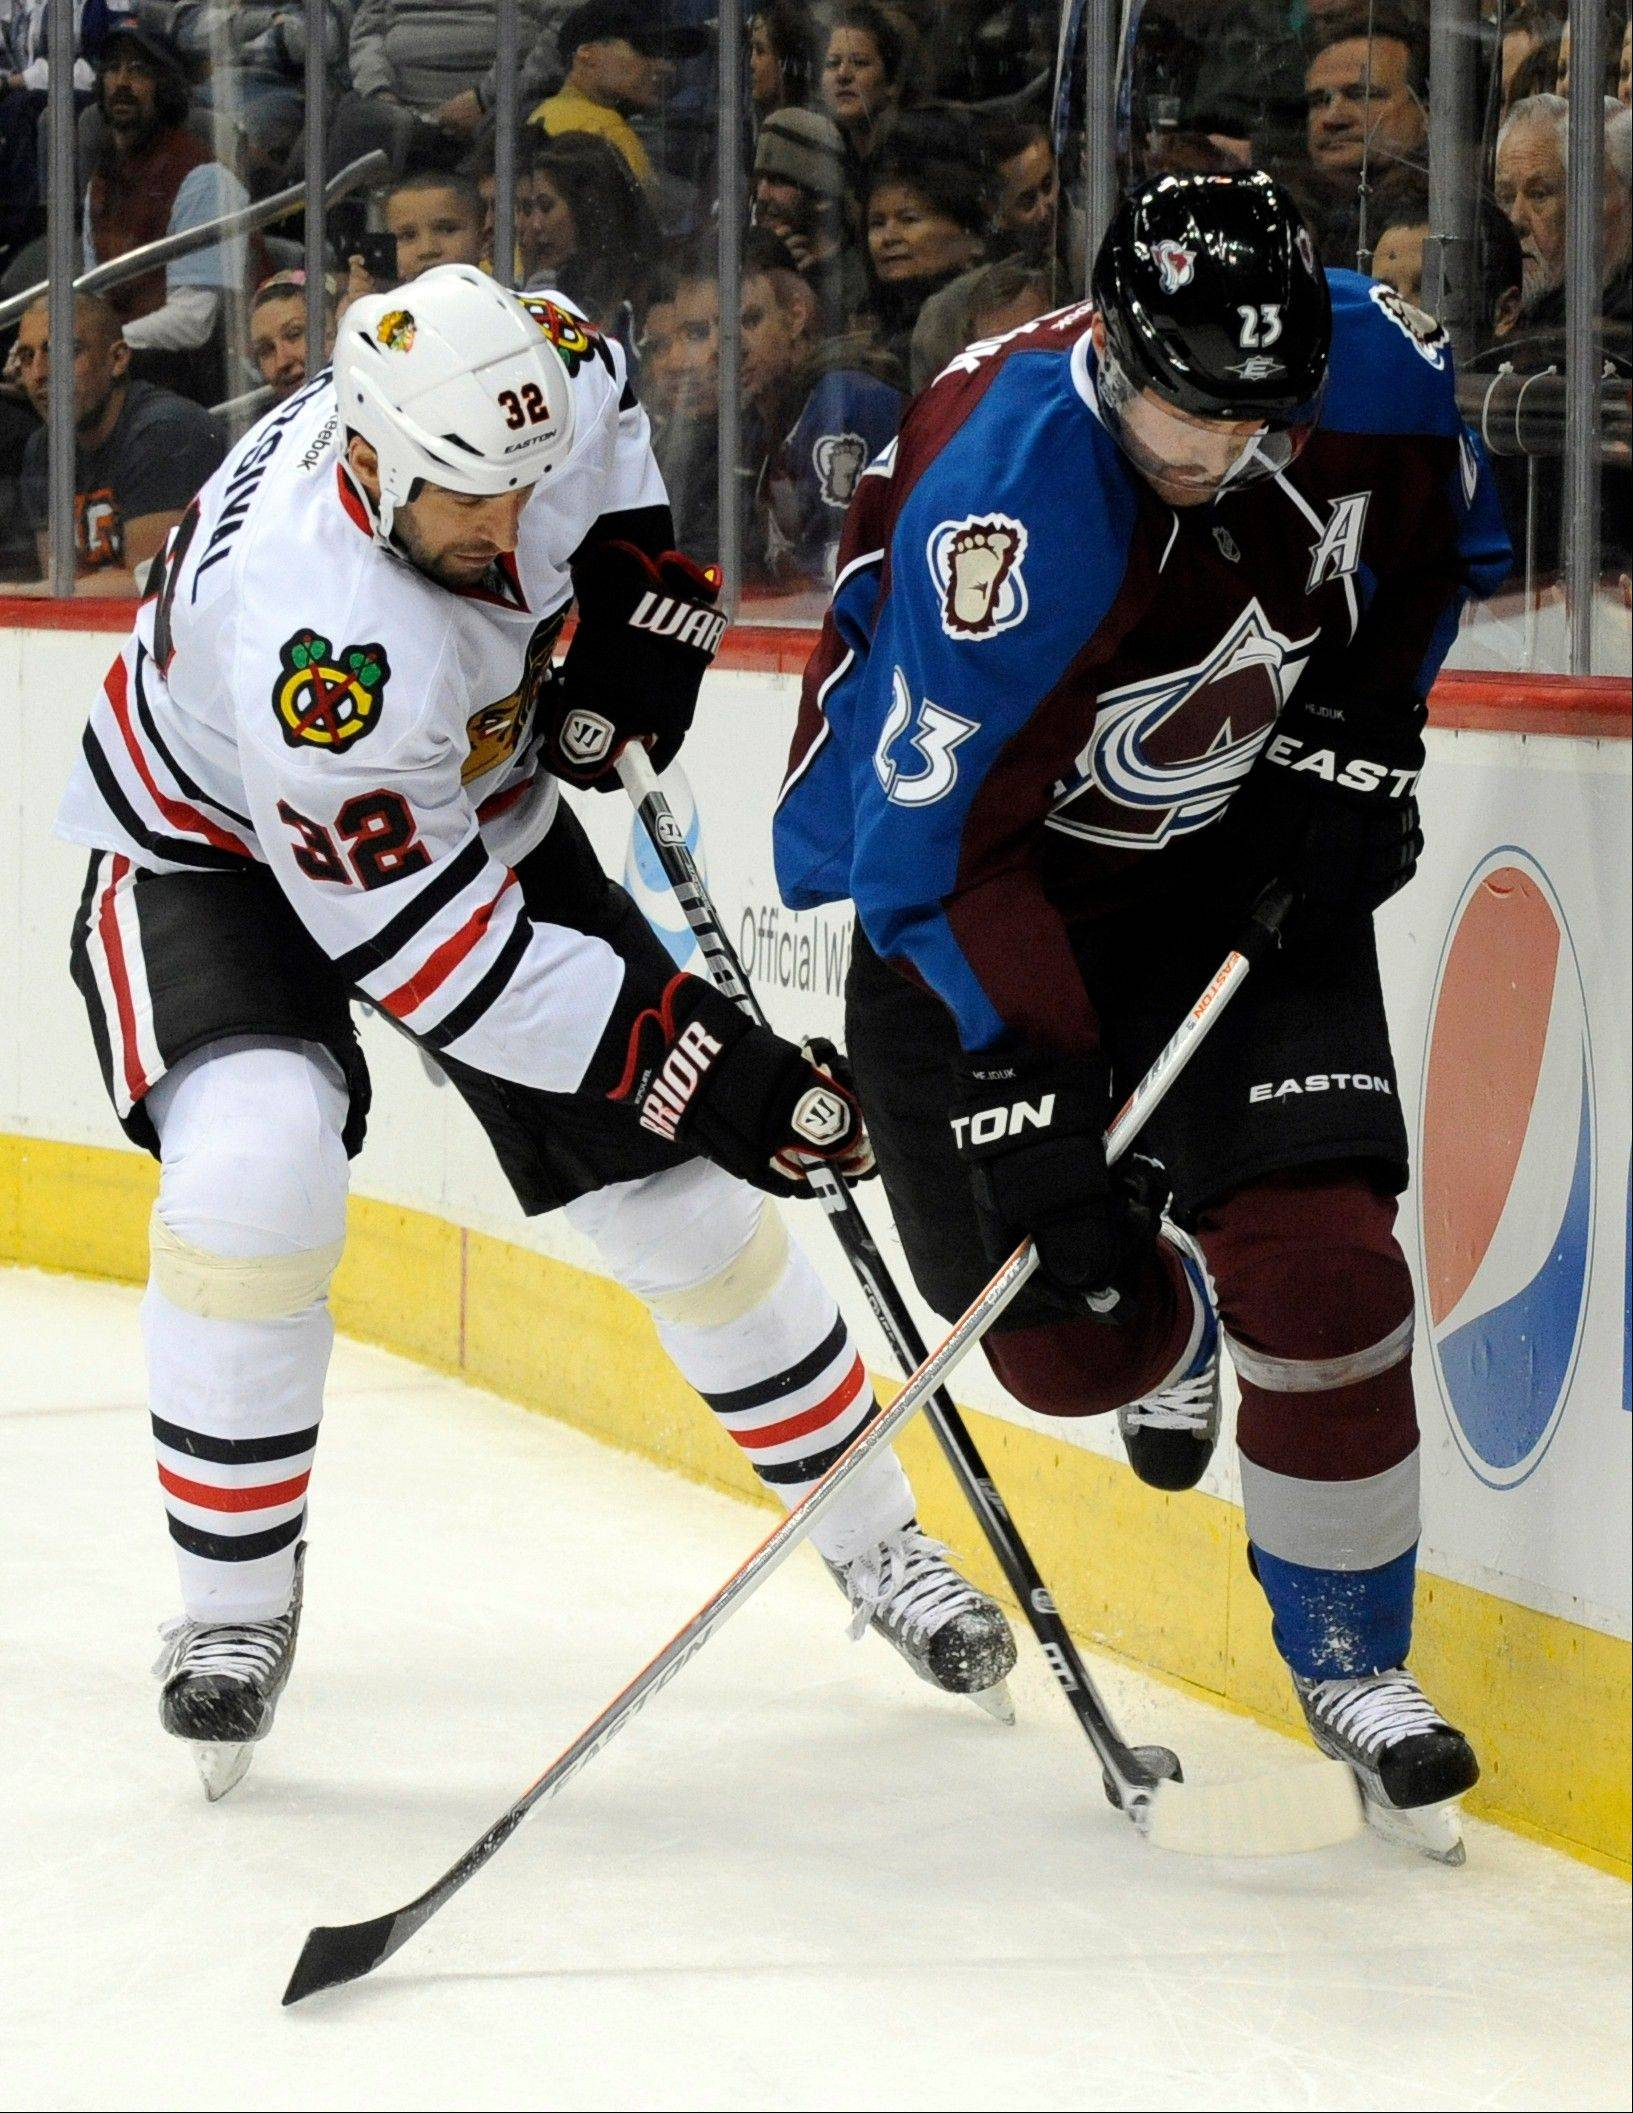 Chicago Blackhawks defenseman Michal Rozsival (32), and Colorado Avalanche right wing Milan Hejduk (23), chase the puck into the corner during the first period.